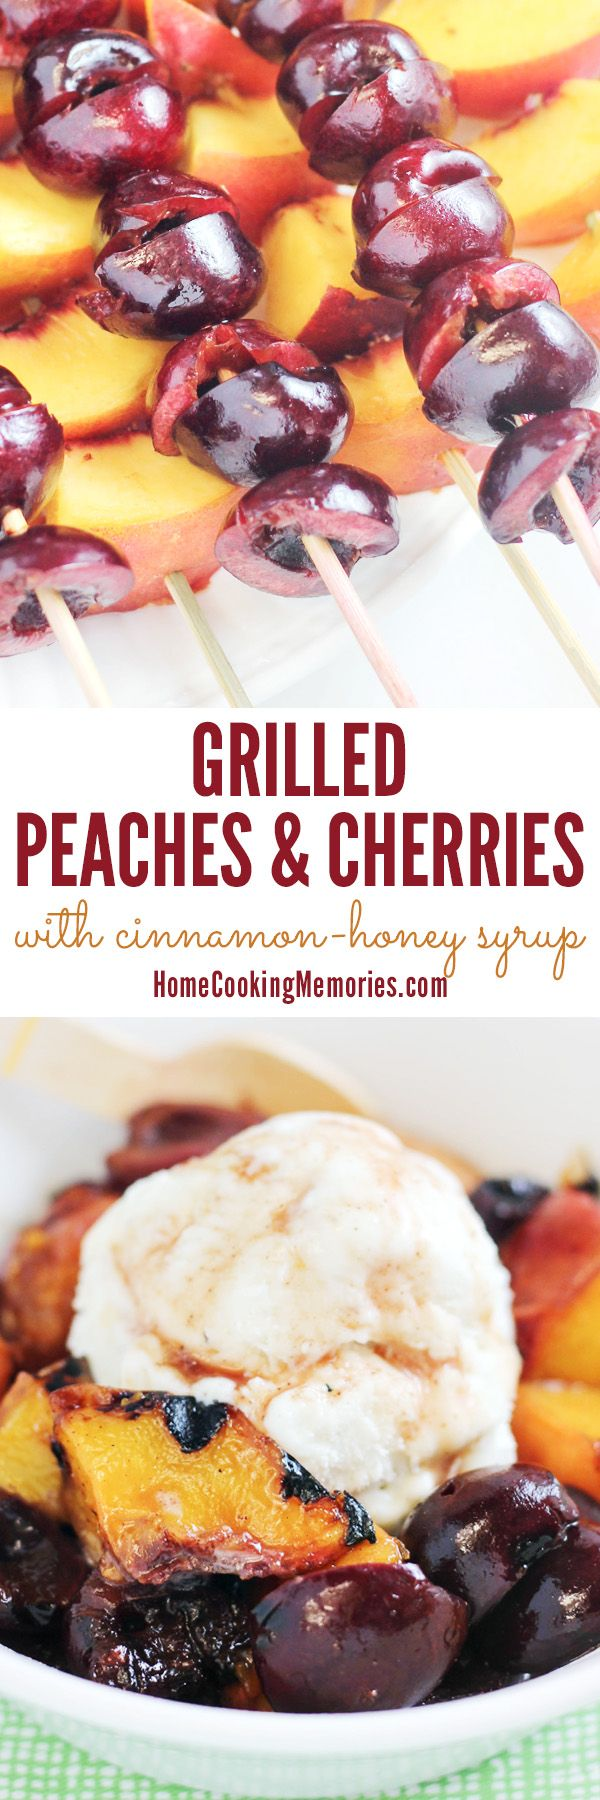 This is a MUST while peaches and cherries are in season: Grilled Peaches & Cherries on a Skewer! Serve this grilled fruit idea right off the grill for an easy summer side dish OR make the easy cinnamon-honey syrup recipe for a delightful ice cream topping!